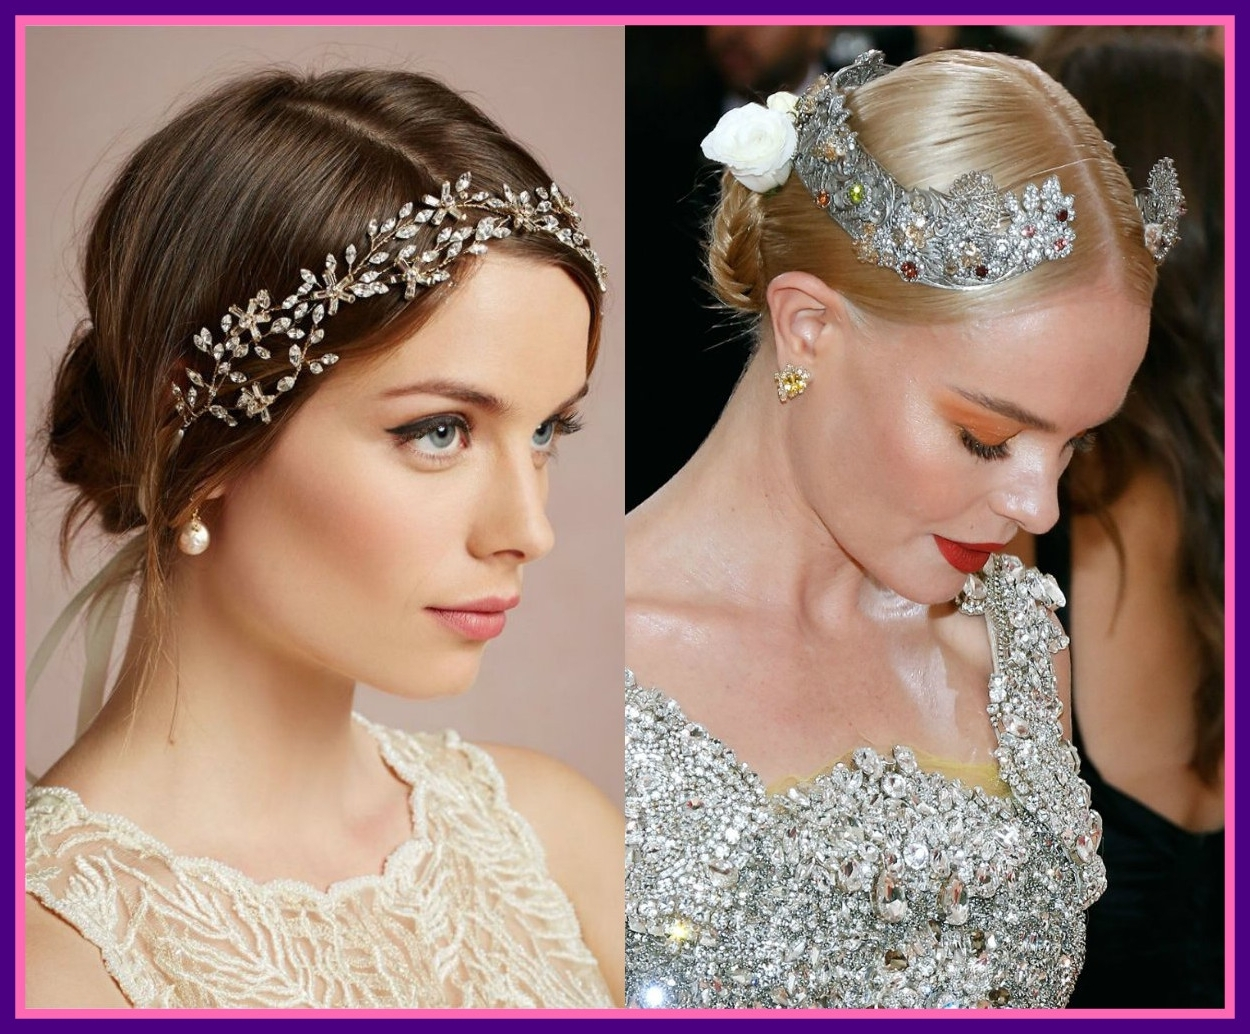 Astonishing Wedding Hairstyles U Accessories To Make You Look Like A For 2018 Wedding Hairstyles Like A Princess (View 3 of 15)